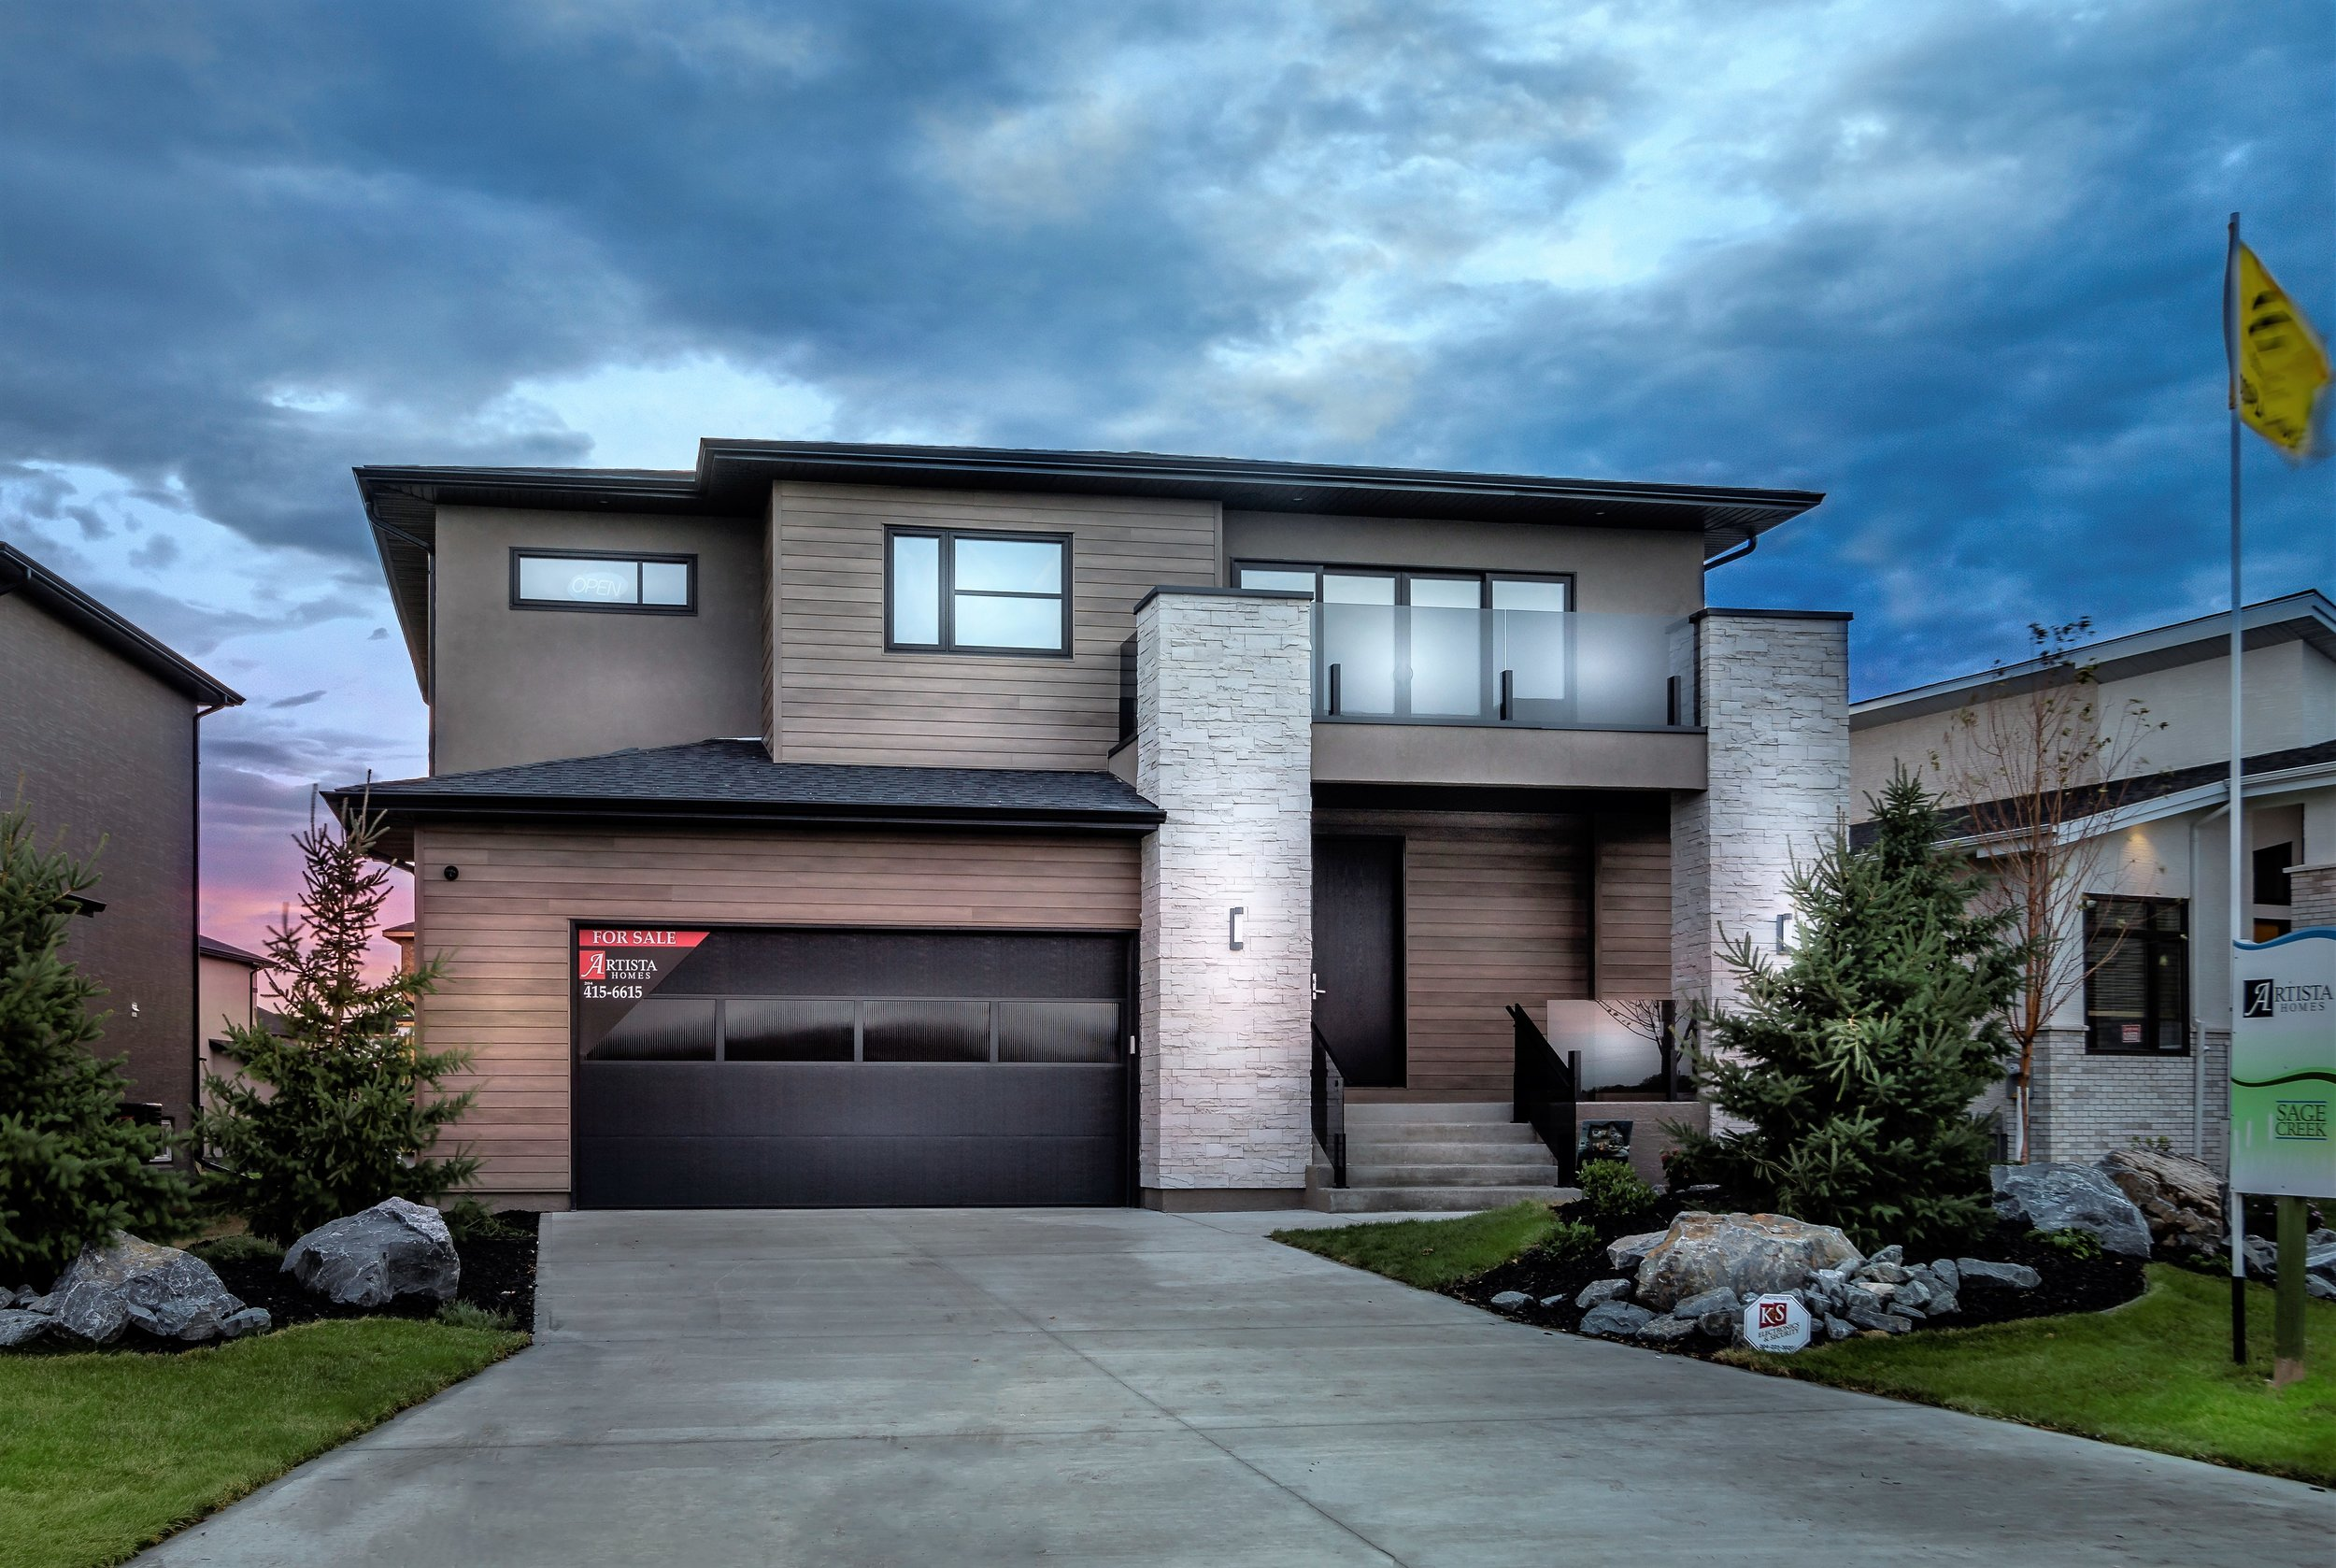 Artista Show Home34 West Plains Drivein Sage Creek - HOURS:Monday to Thursday 5pm-8pmSaturday & Sunday from 1pm-5pm.